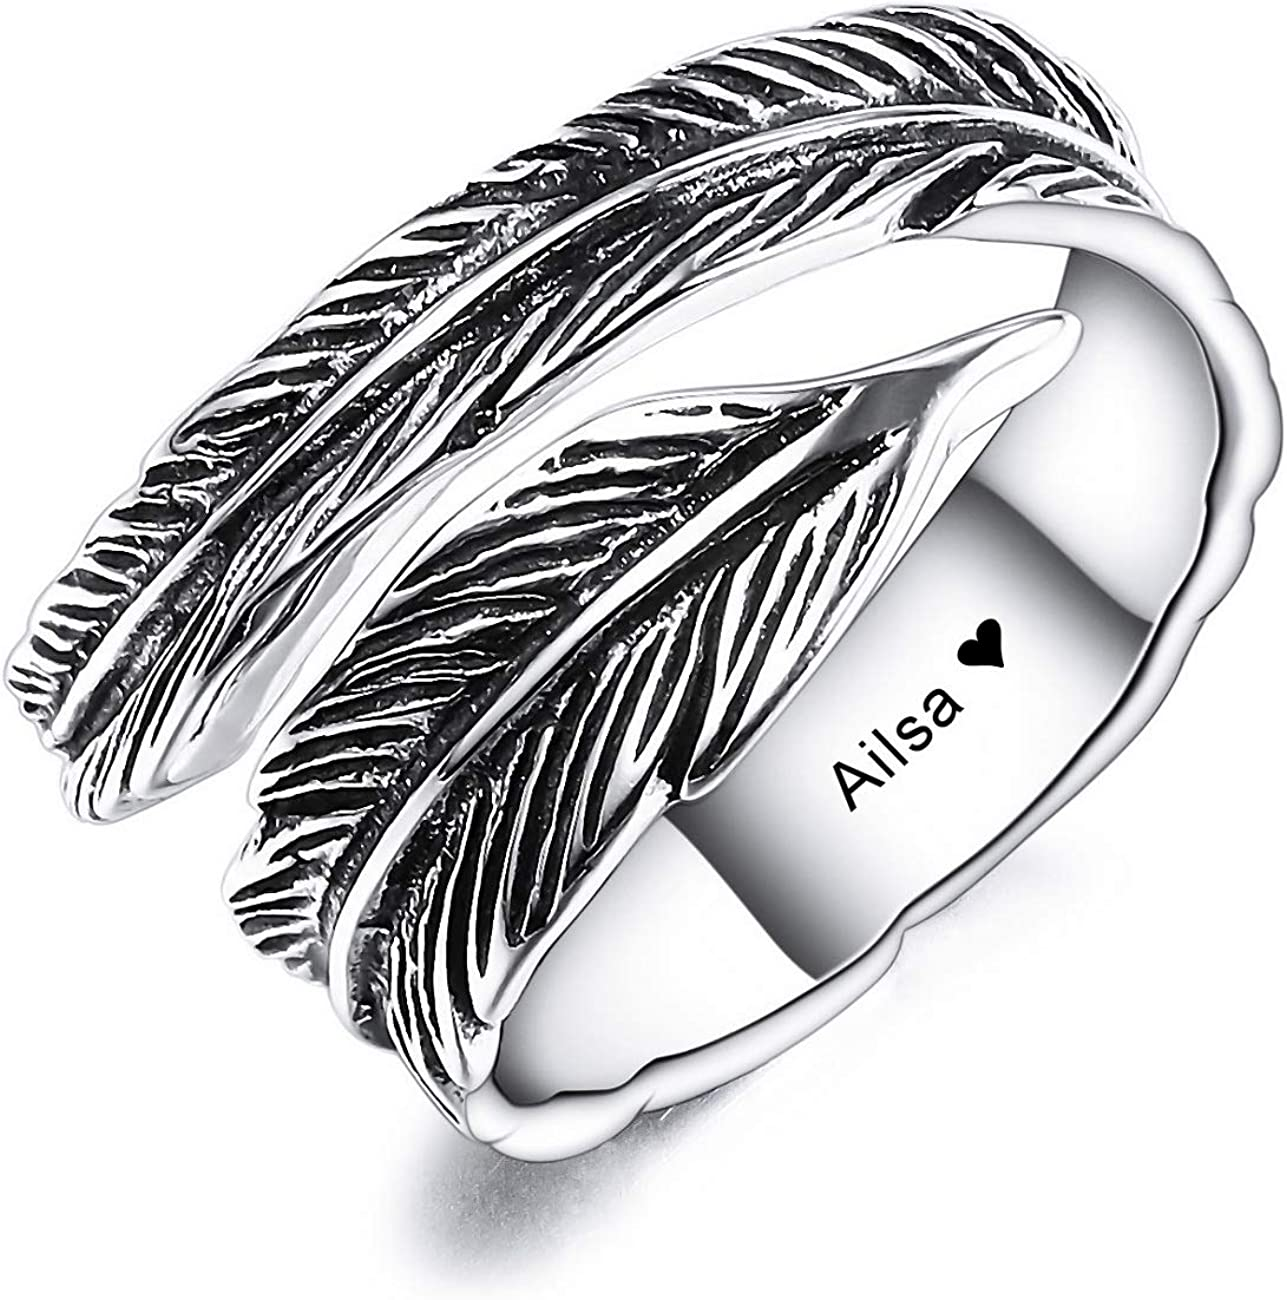 VIBOOS Personalized 925 Sterling Silver Adjustable Feather Ring for Women Men Boys Girls Engraving Name/Date Custom Leaf Open Knuckle Ring Band Lovers Jewelry